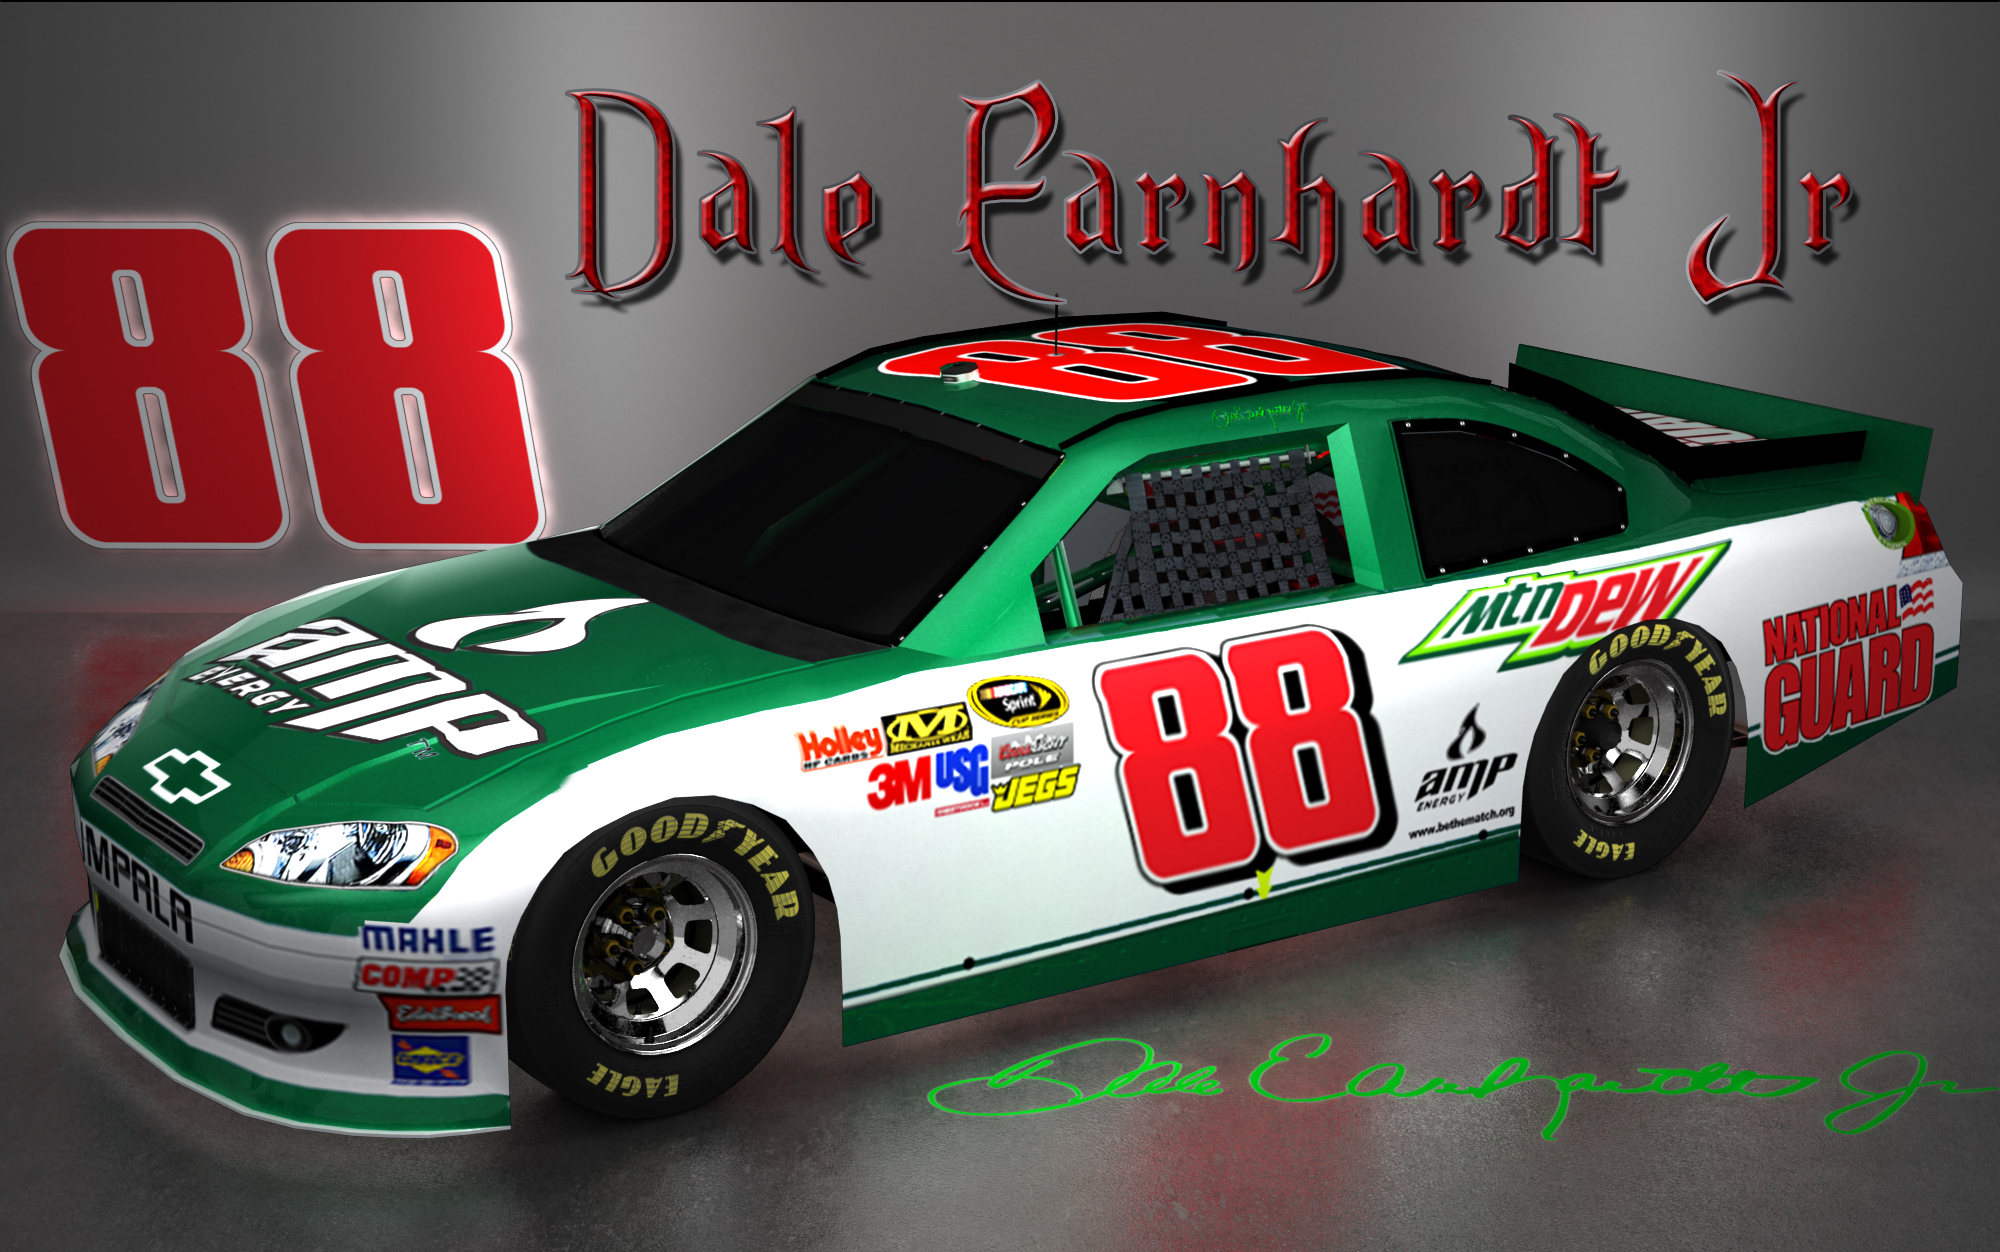 1080 Best Images About Nascar And Dale Jr On Pinterest: [44+] NASCAR 88 Wallpaper On WallpaperSafari